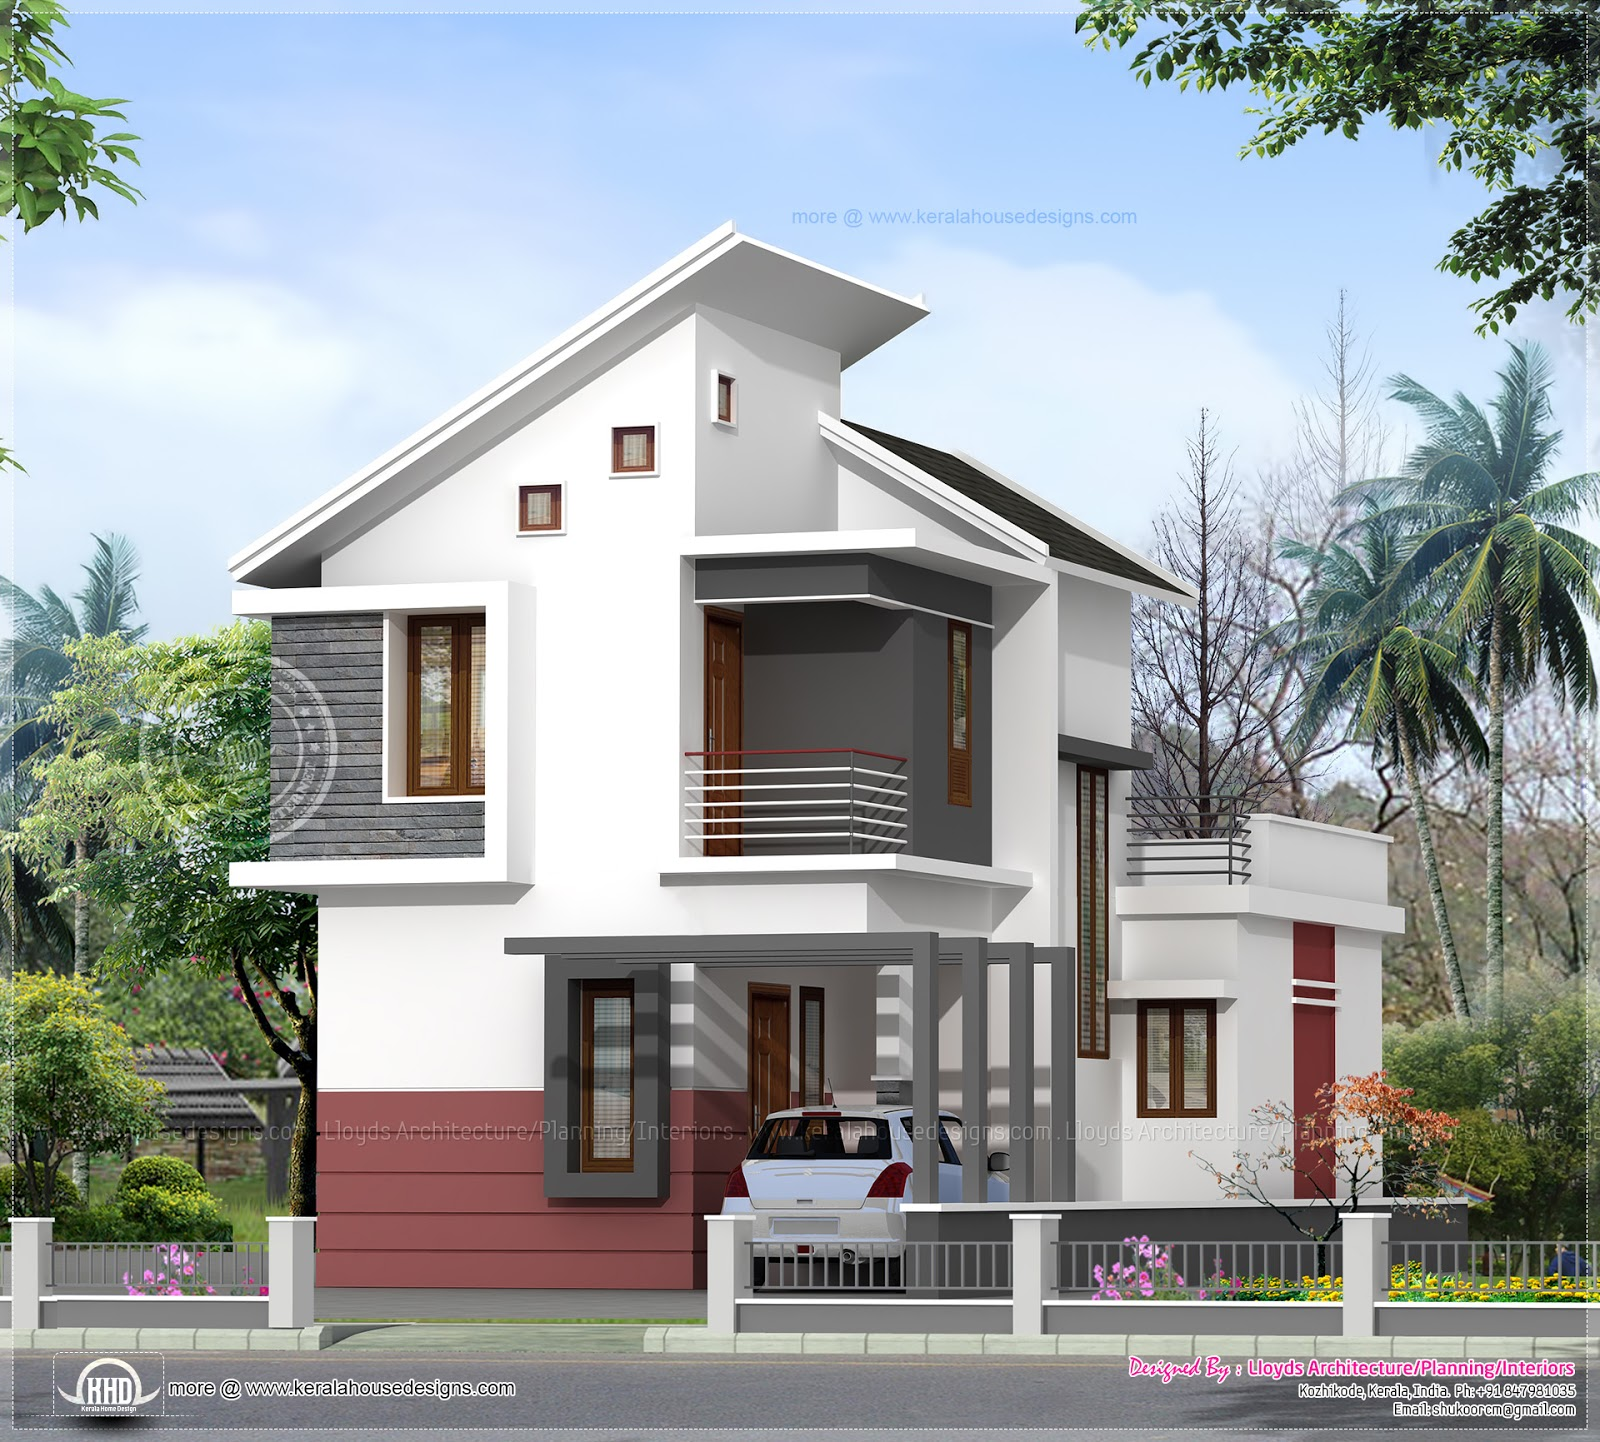 1197 Sq Ft 3 Bedroom Villa In 3 Cents Plot Kerala Home Design And Floor Plans